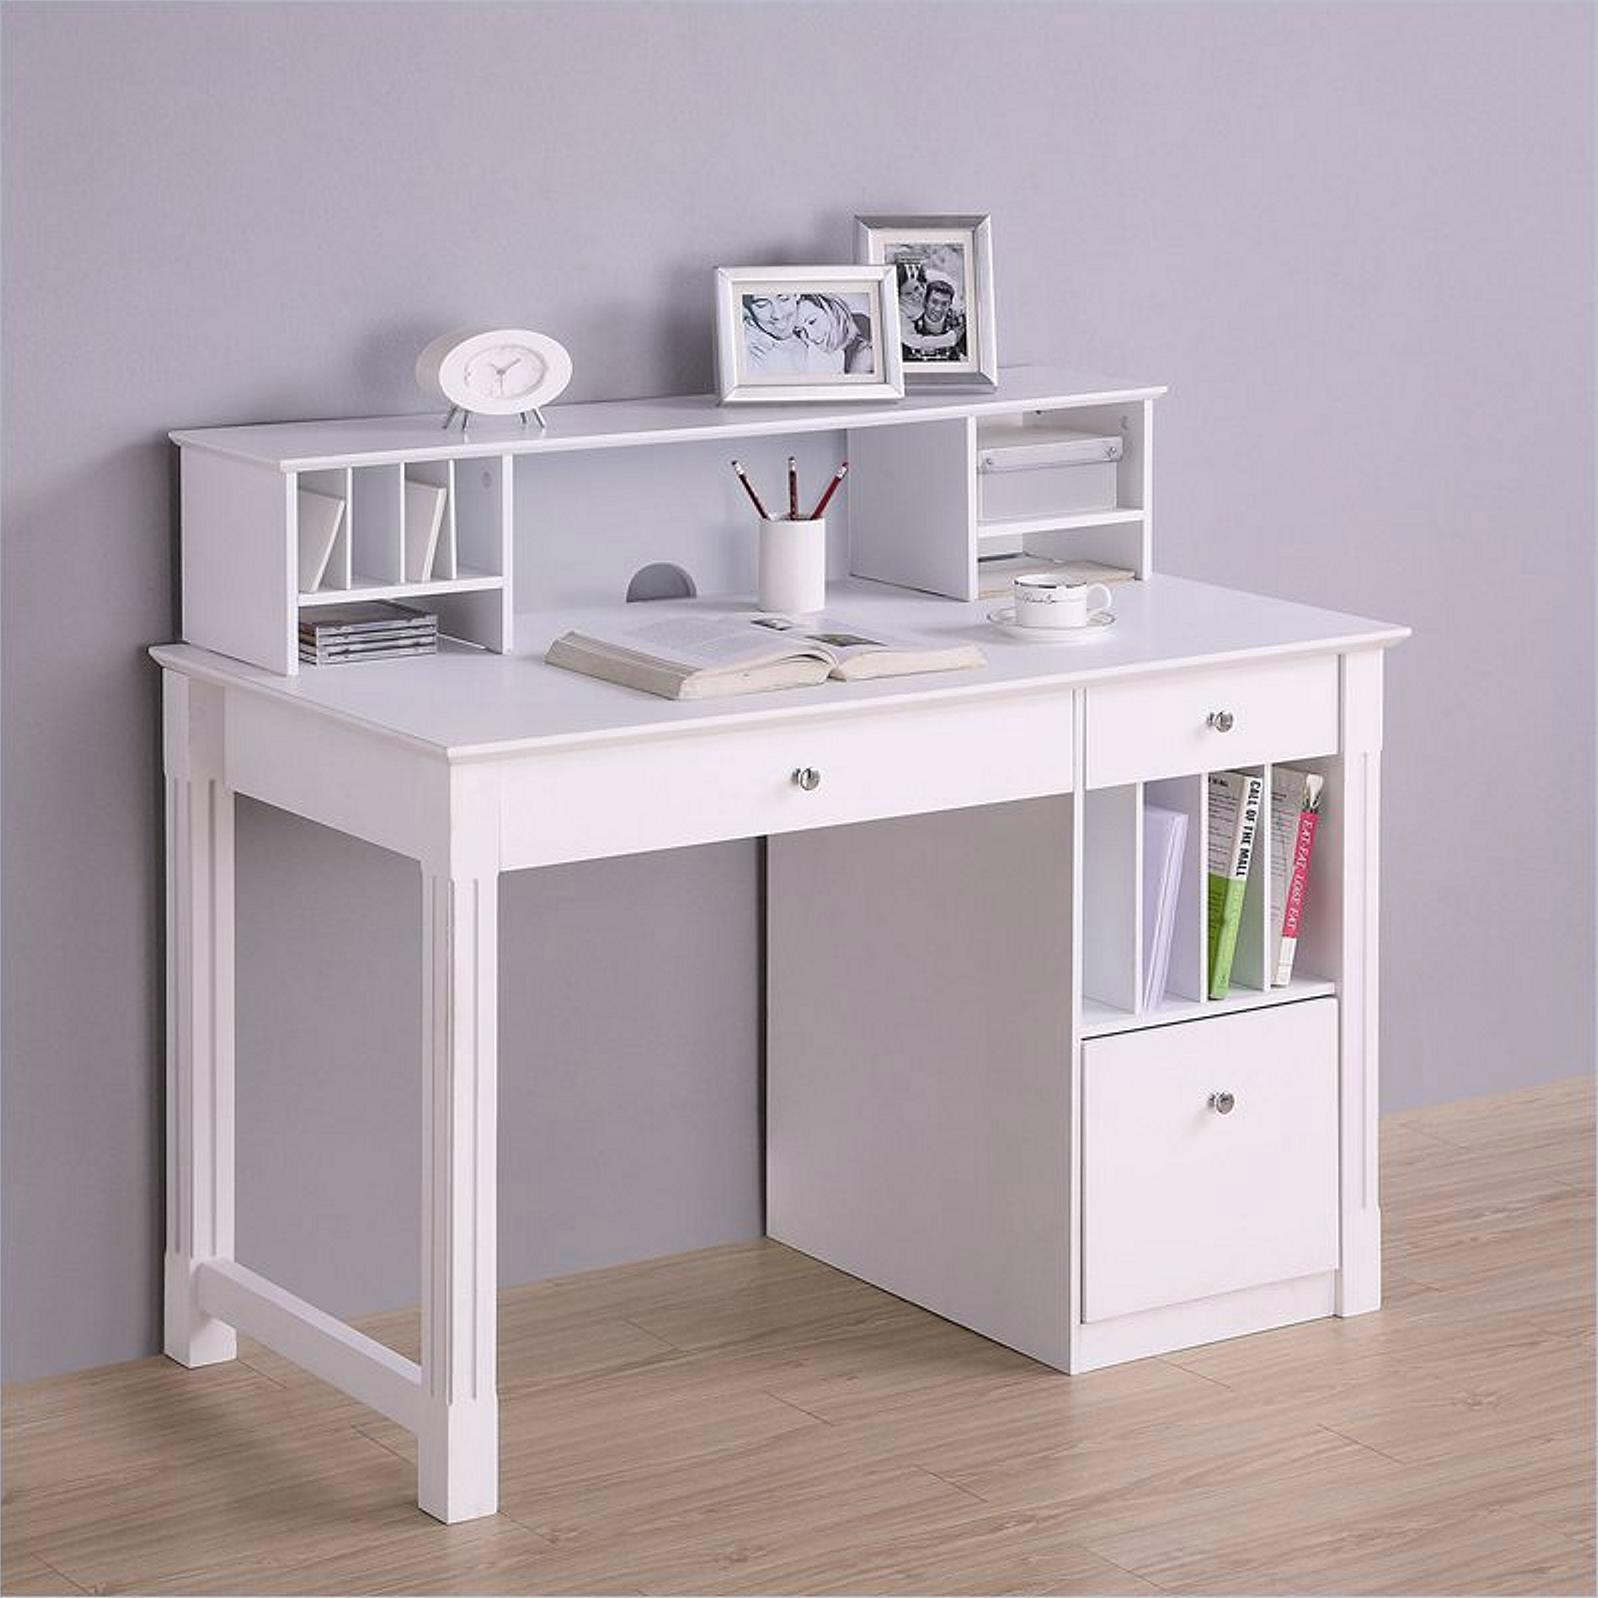 Home Reading Room Hutch Top White Office Desk Furniture 2